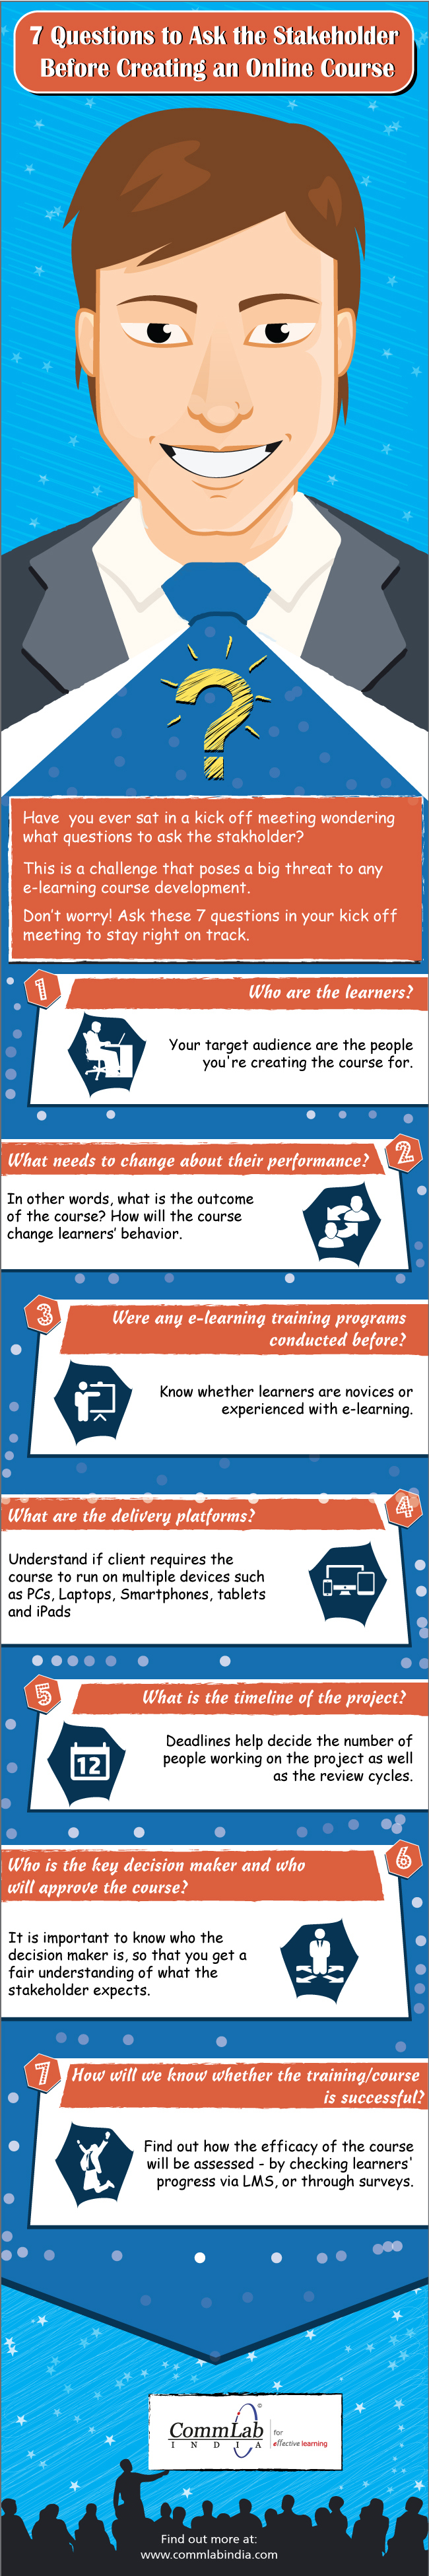 questions-to-ask-the-elearning-stakeholders-infographic